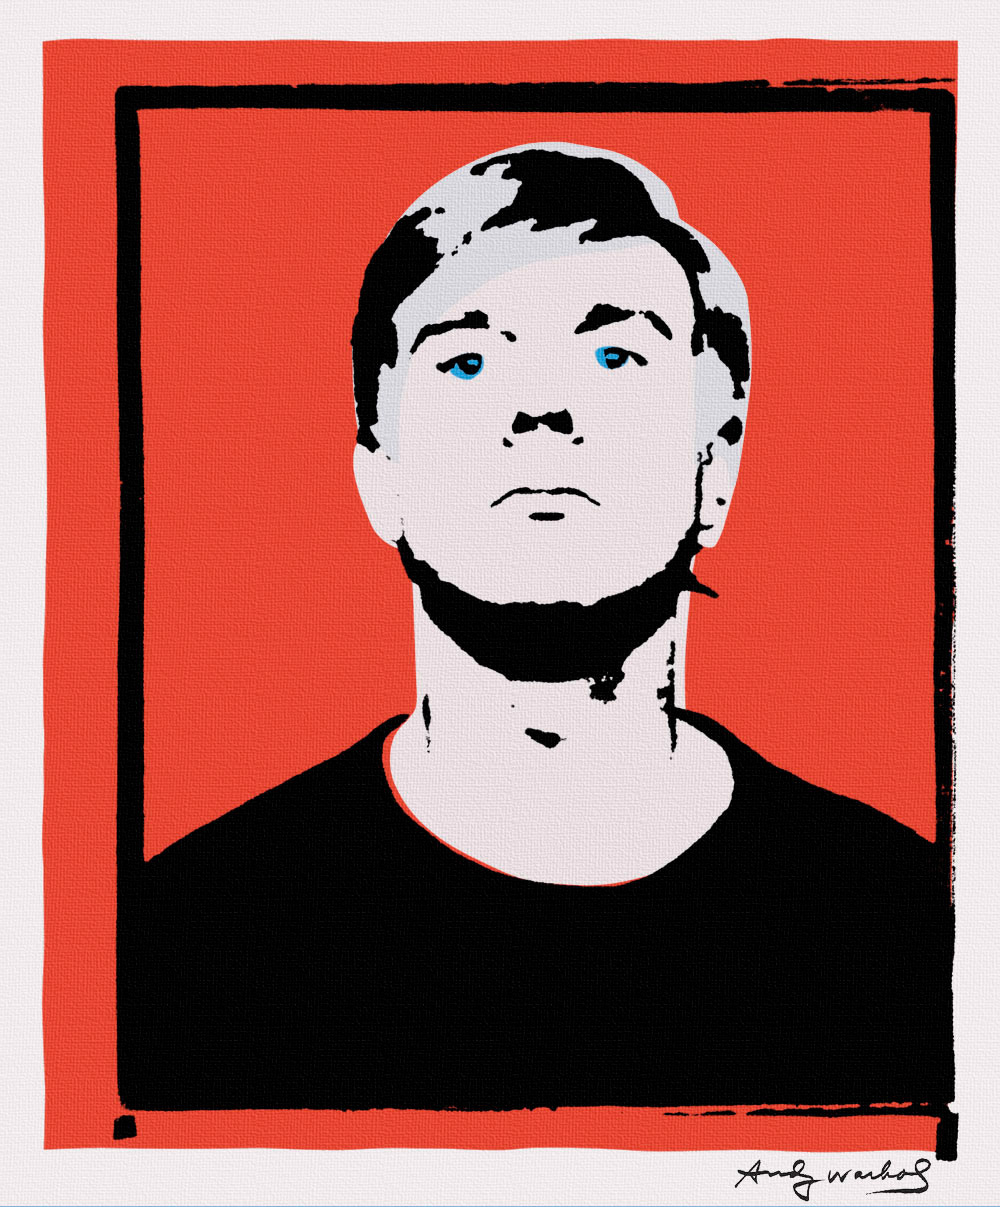 Self Portrait that was central to the law suit leading to the shut down of the Warhol authentication board